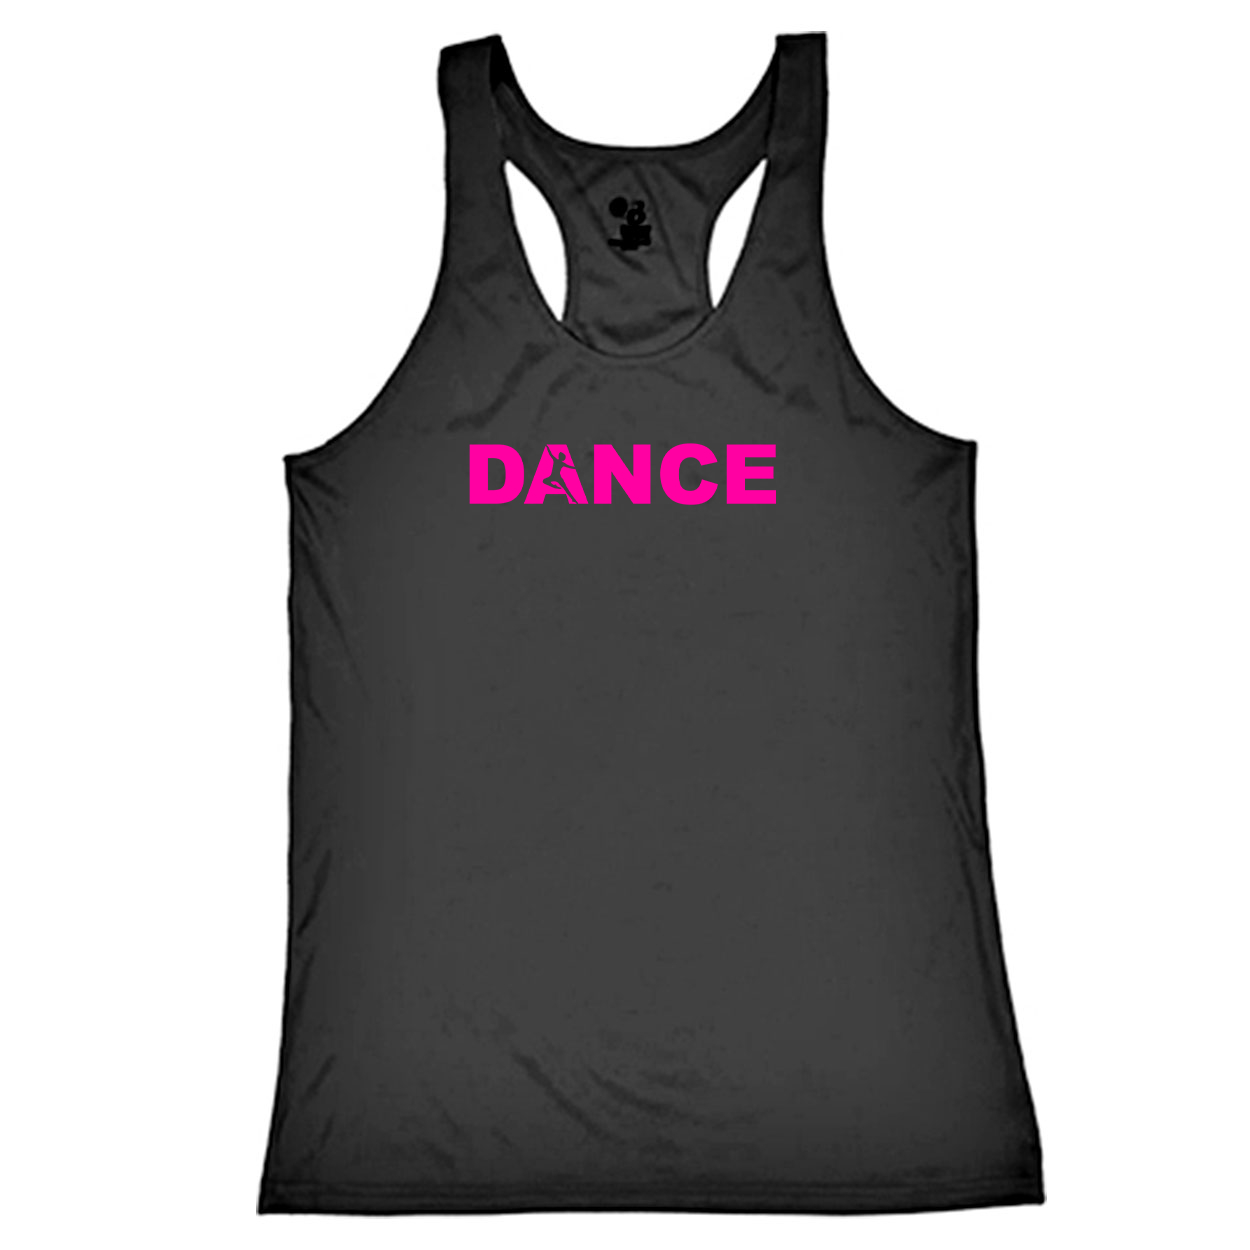 Dance Silhouette Logo Classic Youth Girls Performance Racerback Tank Top Black (Pink Logo)